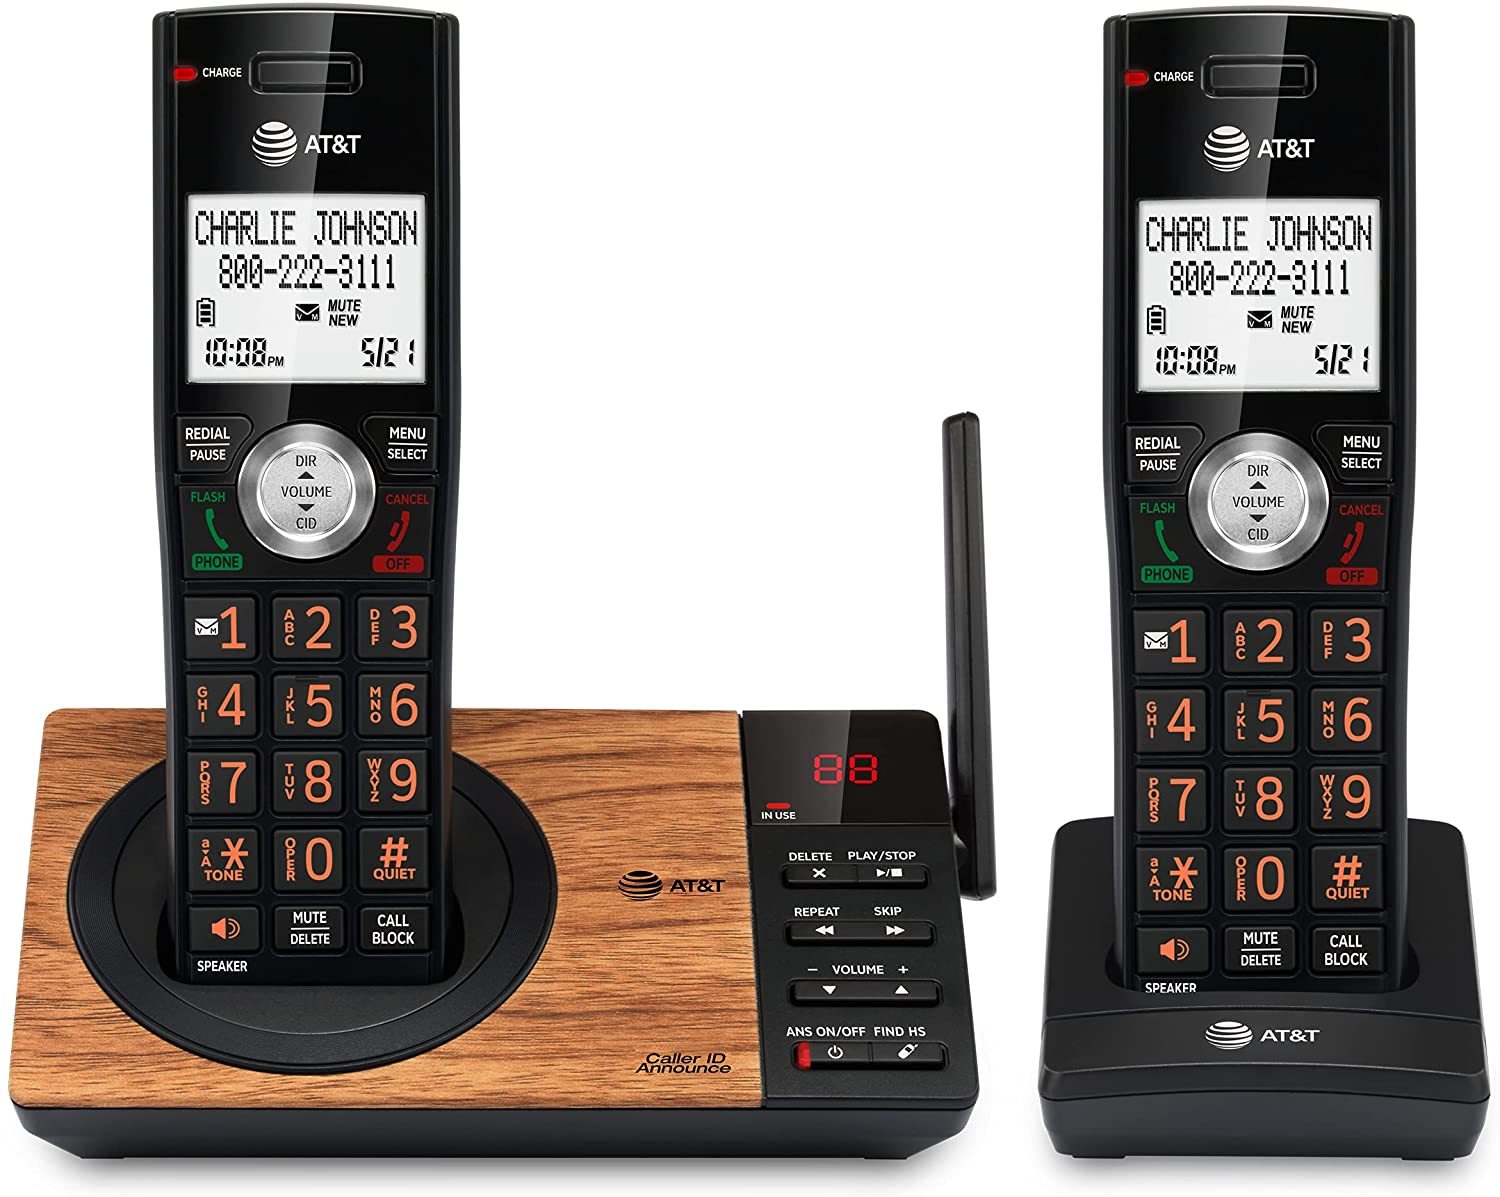 AT&T CL82267 DECT 6.0 2-Handset Cordless Phone for Home with Answering Machine, Call Blocking, Caller ID Announcer, Intercom and Long Range, Black & Wood Grain Finish